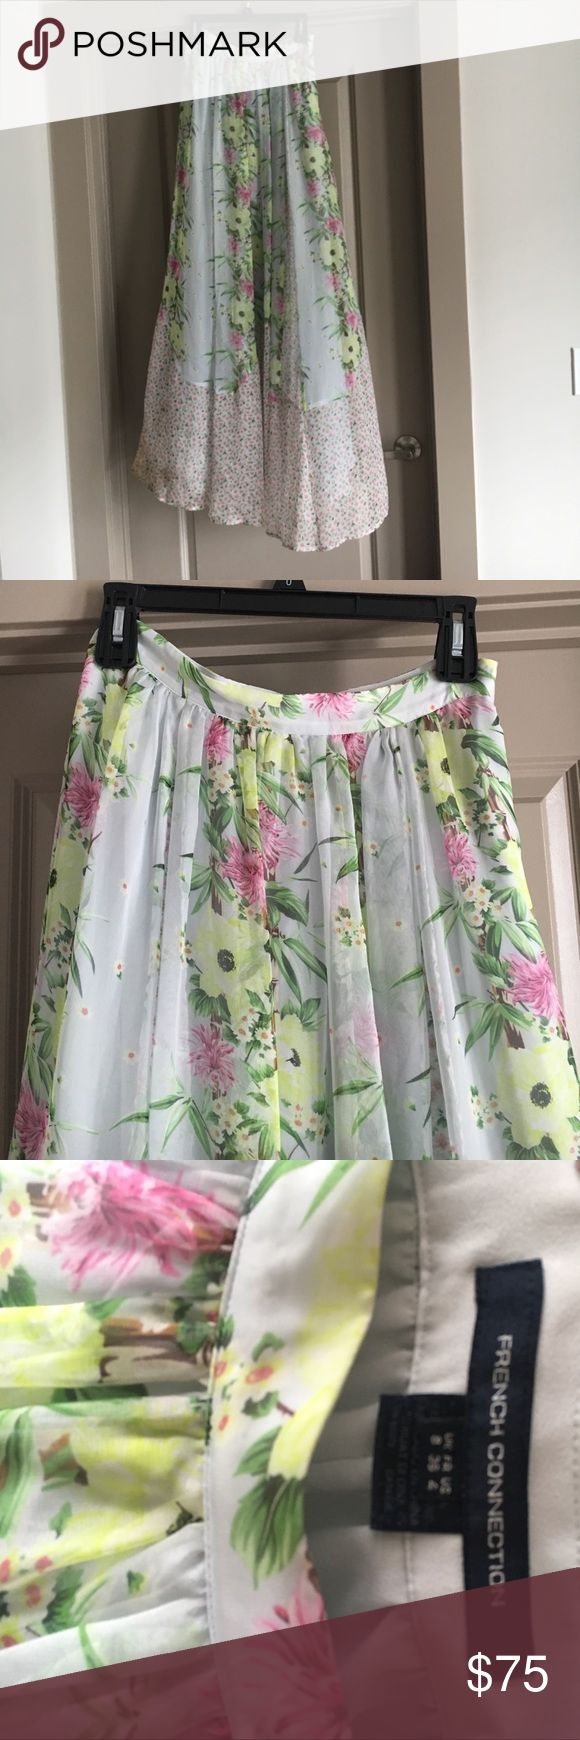 French connection maxi skirt.  Size 4 This beautiful maxi skirt is perfect for summer!  Looks great with a cute little crop top. French Connection Skirts Maxi